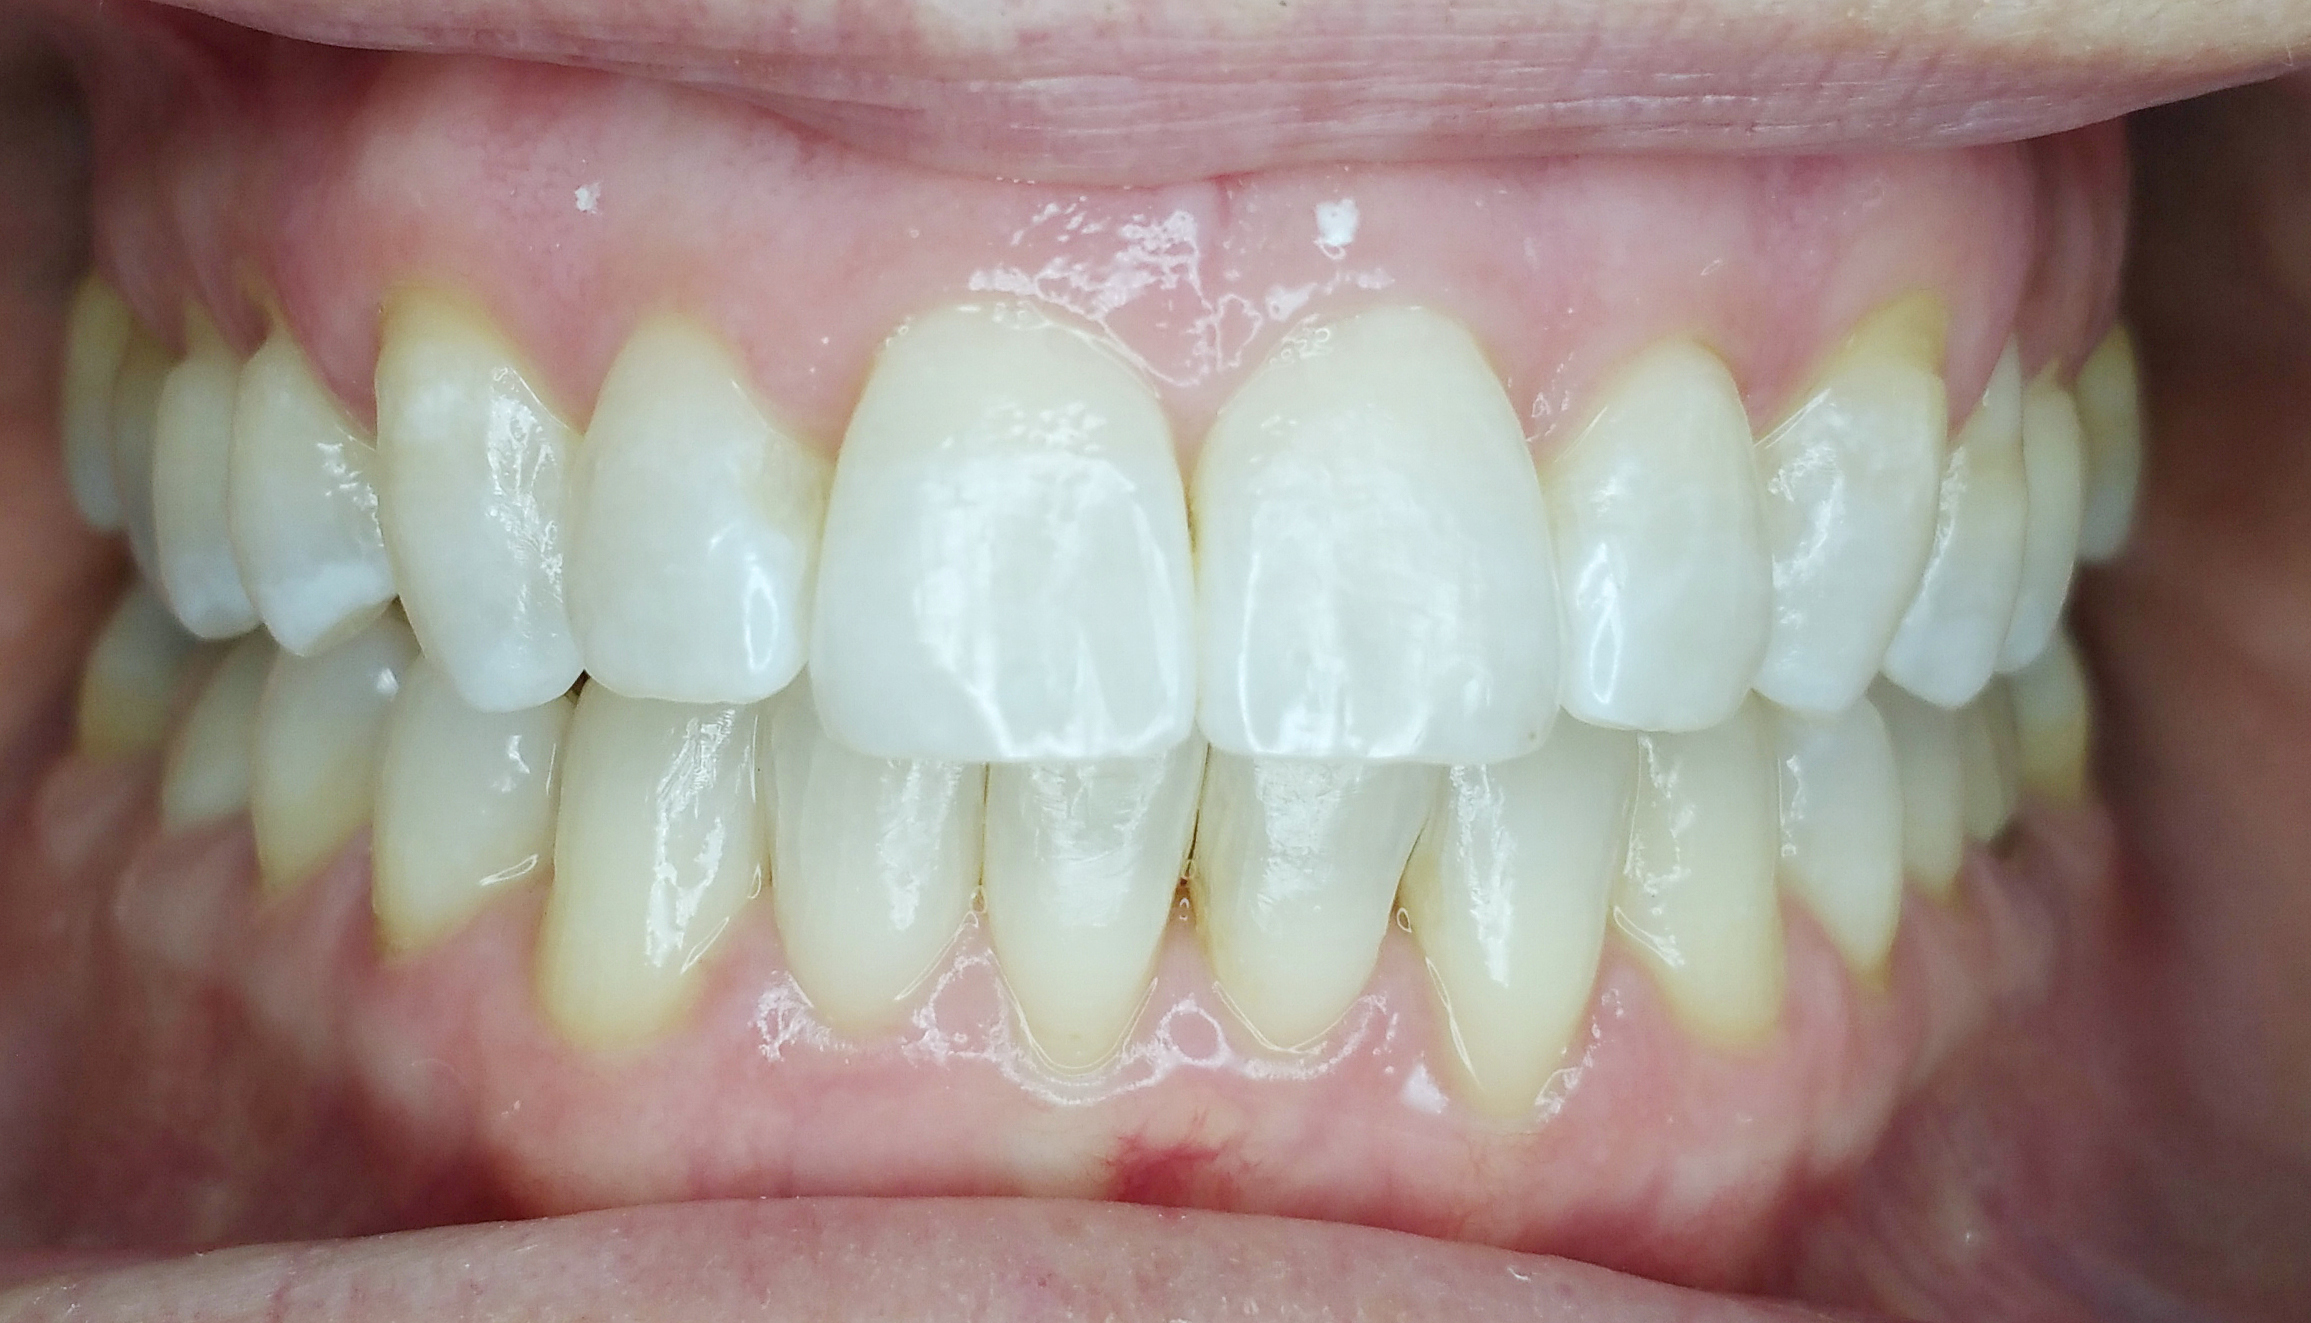 PowerProx 6-month Braces Case 6 after